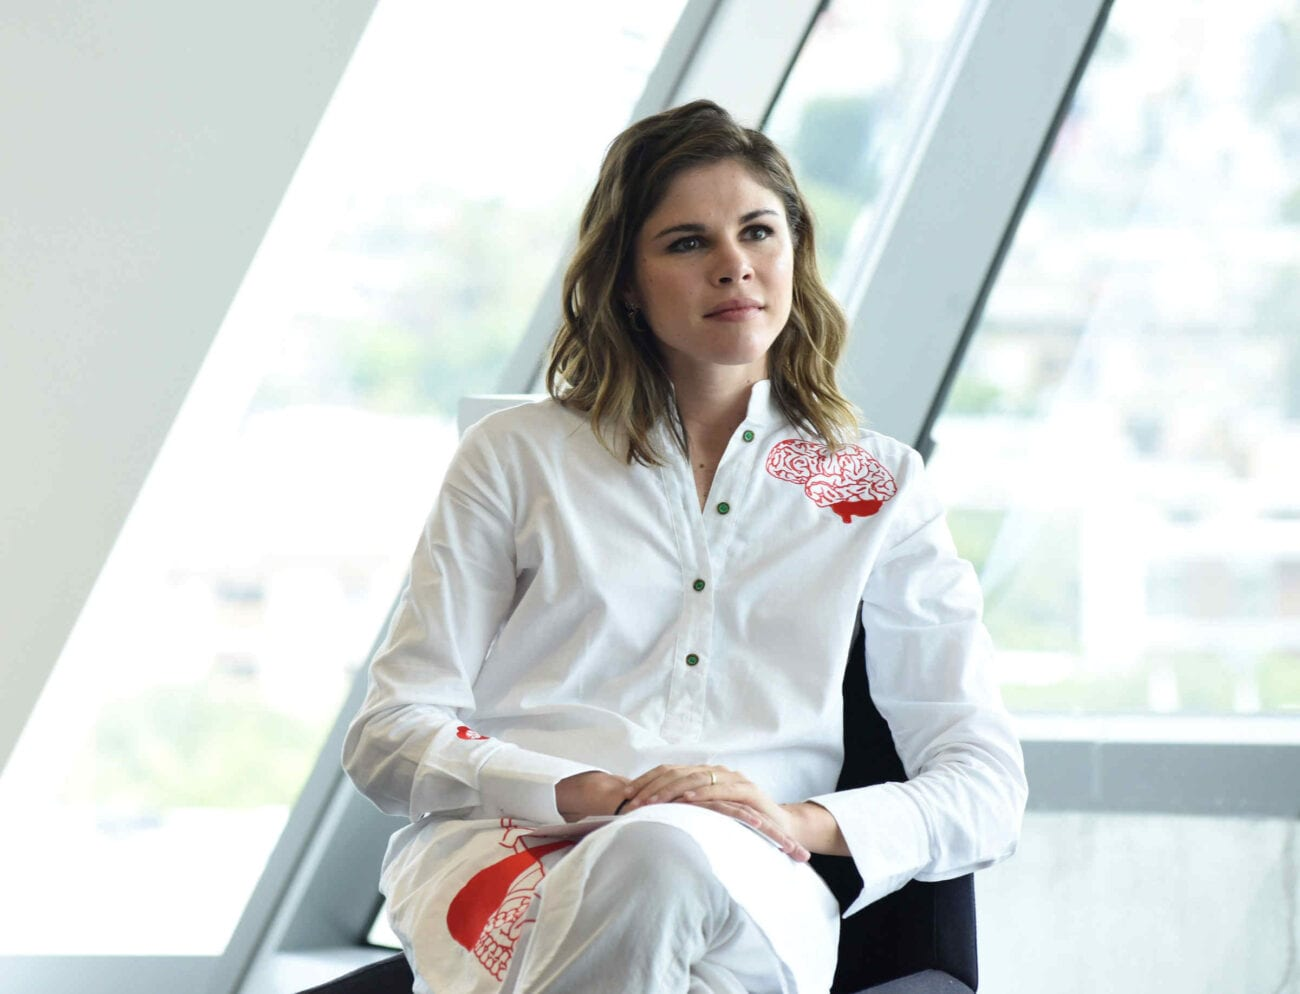 Emily Weiss built her cosmetics company Glossier on a message of inclusivity. Find out why that inclusive message doesn't mean much to her former employees.